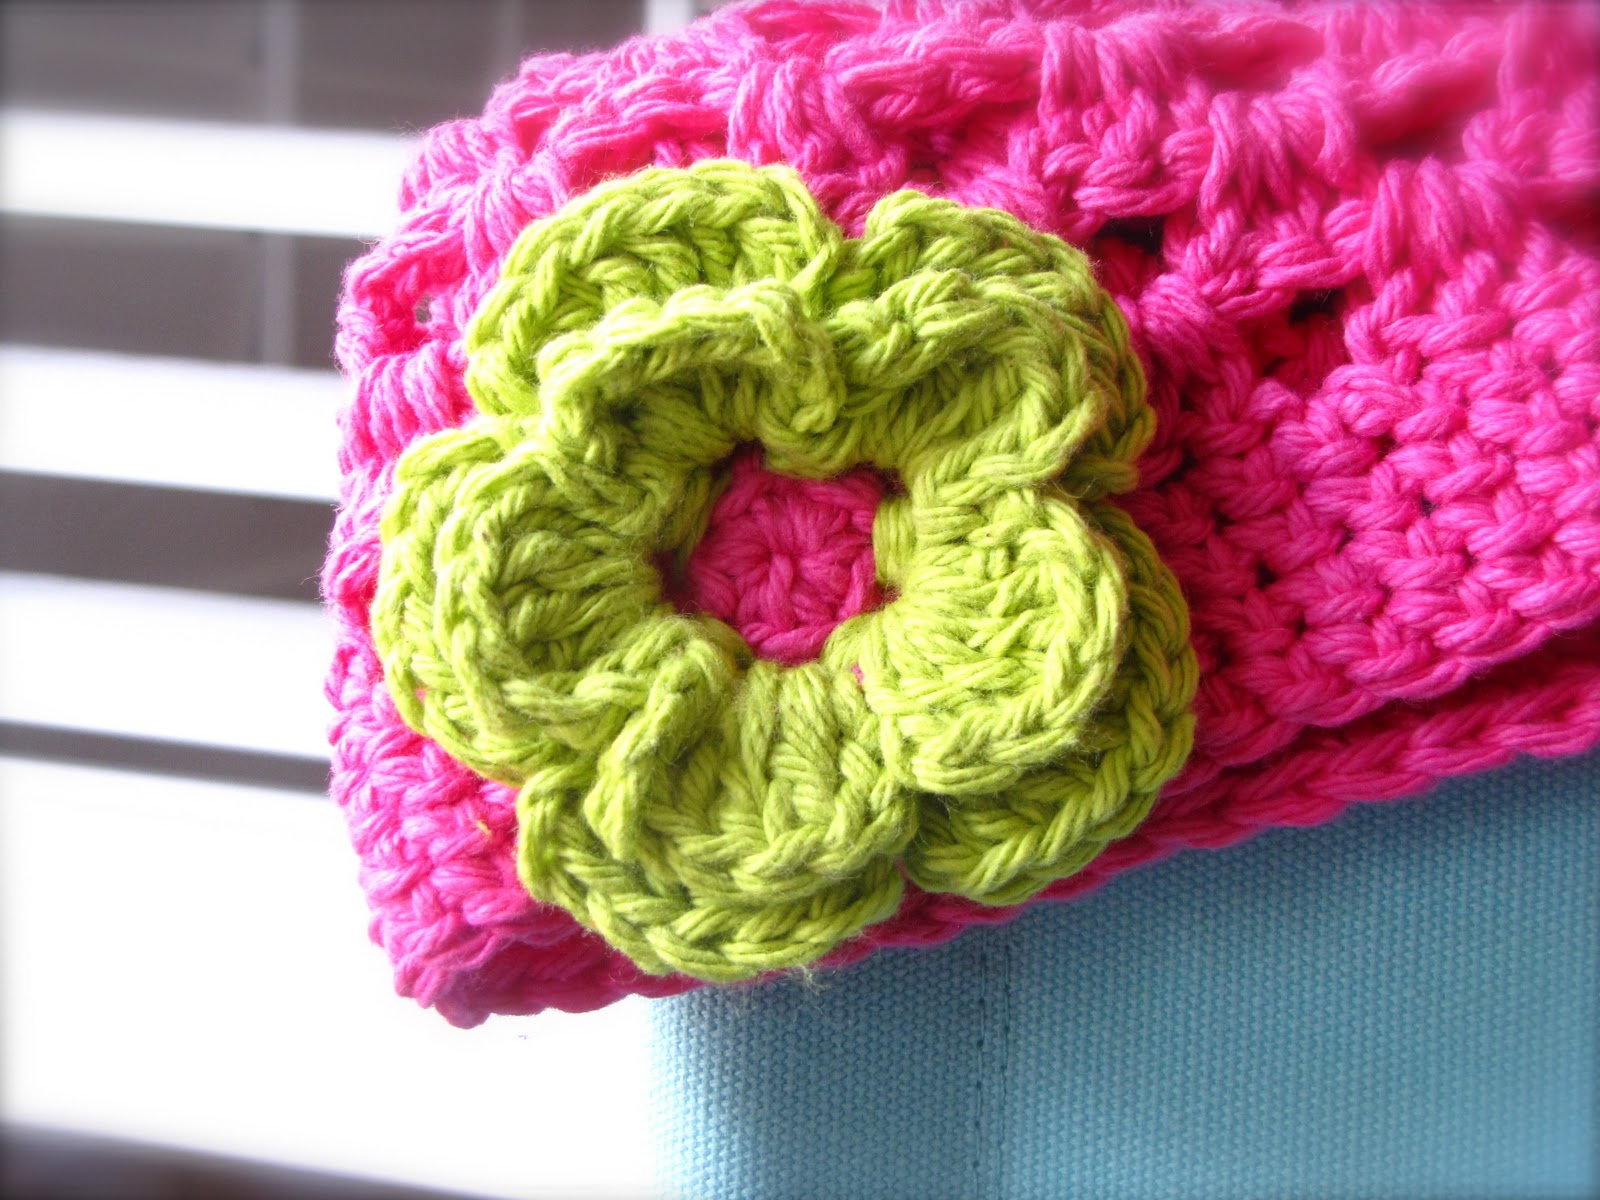 Double Layer Daisy Crochet Pattern - Daisy Cottage Designs